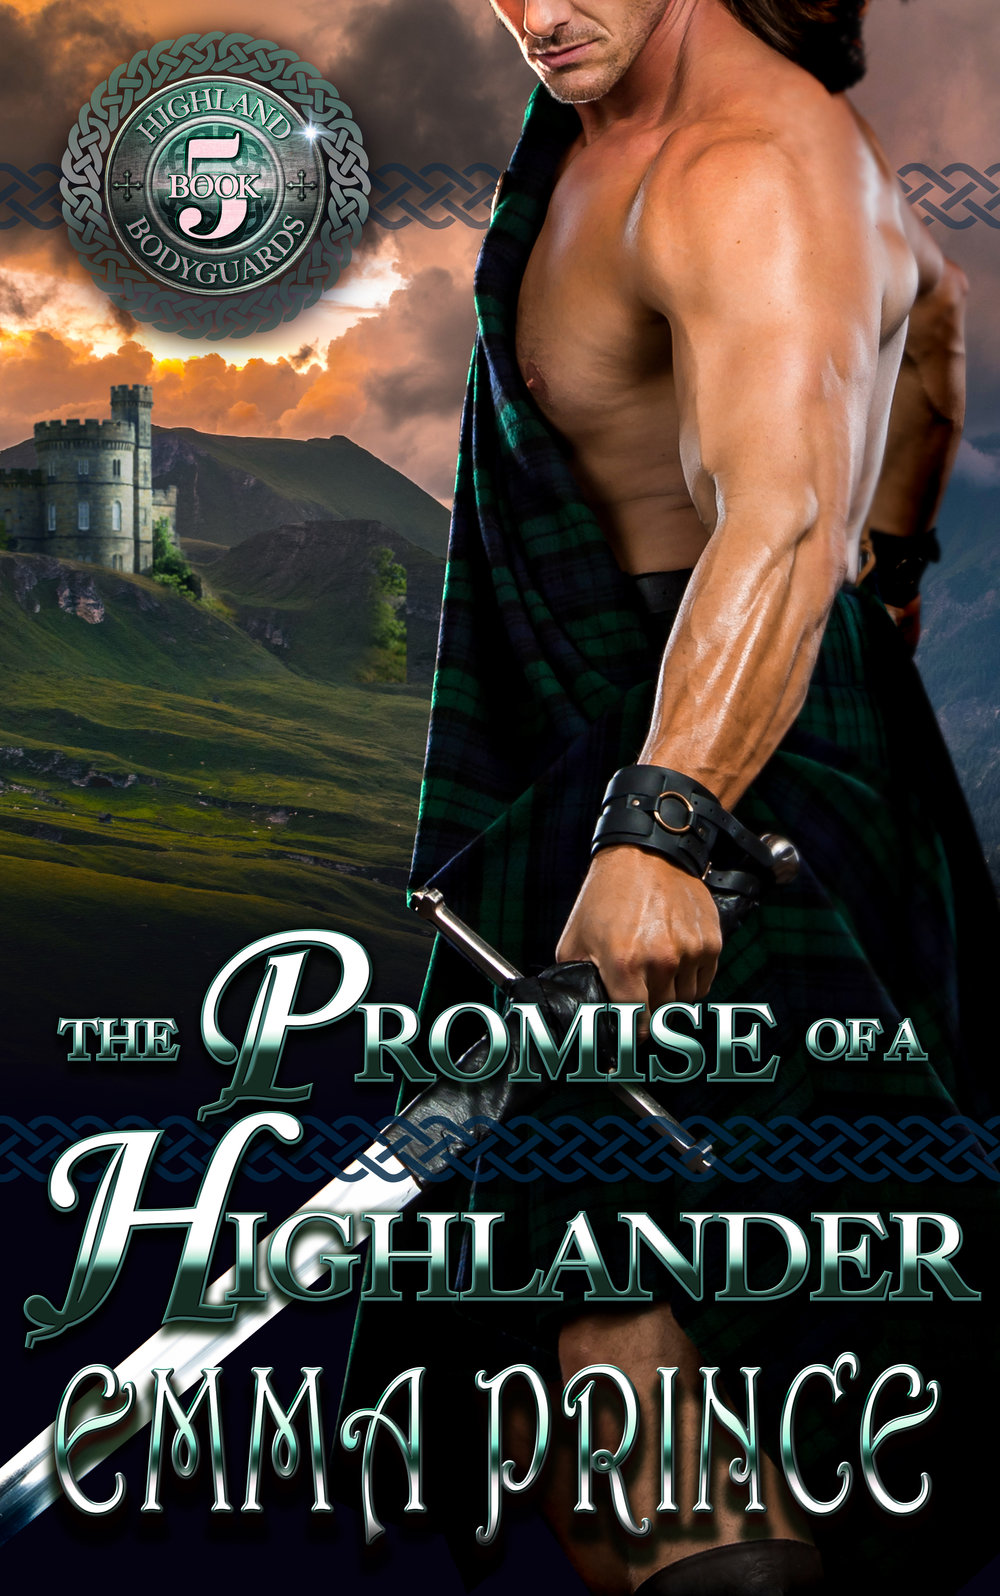 The Promise of a Highlander (Book 5)